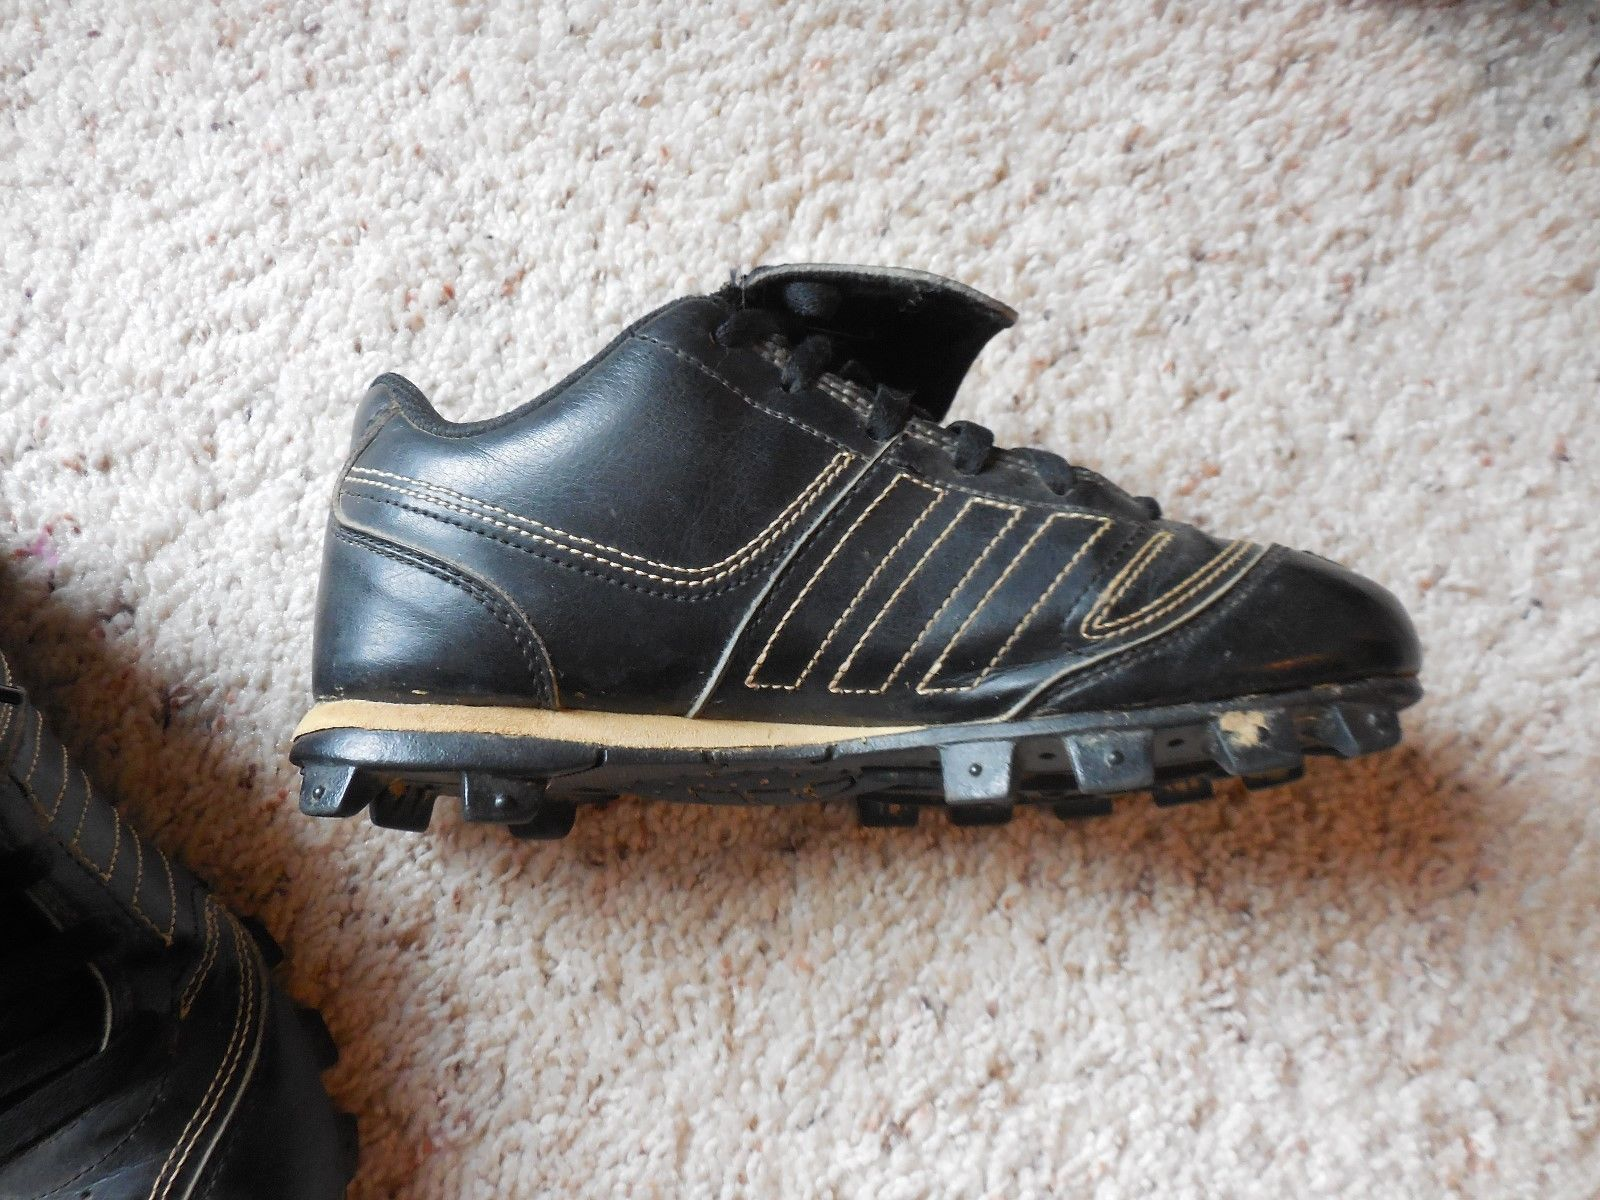 ece09ceb48d Adidas cleats size 2 youth Black with white stripes Softball baseball  soccer etc